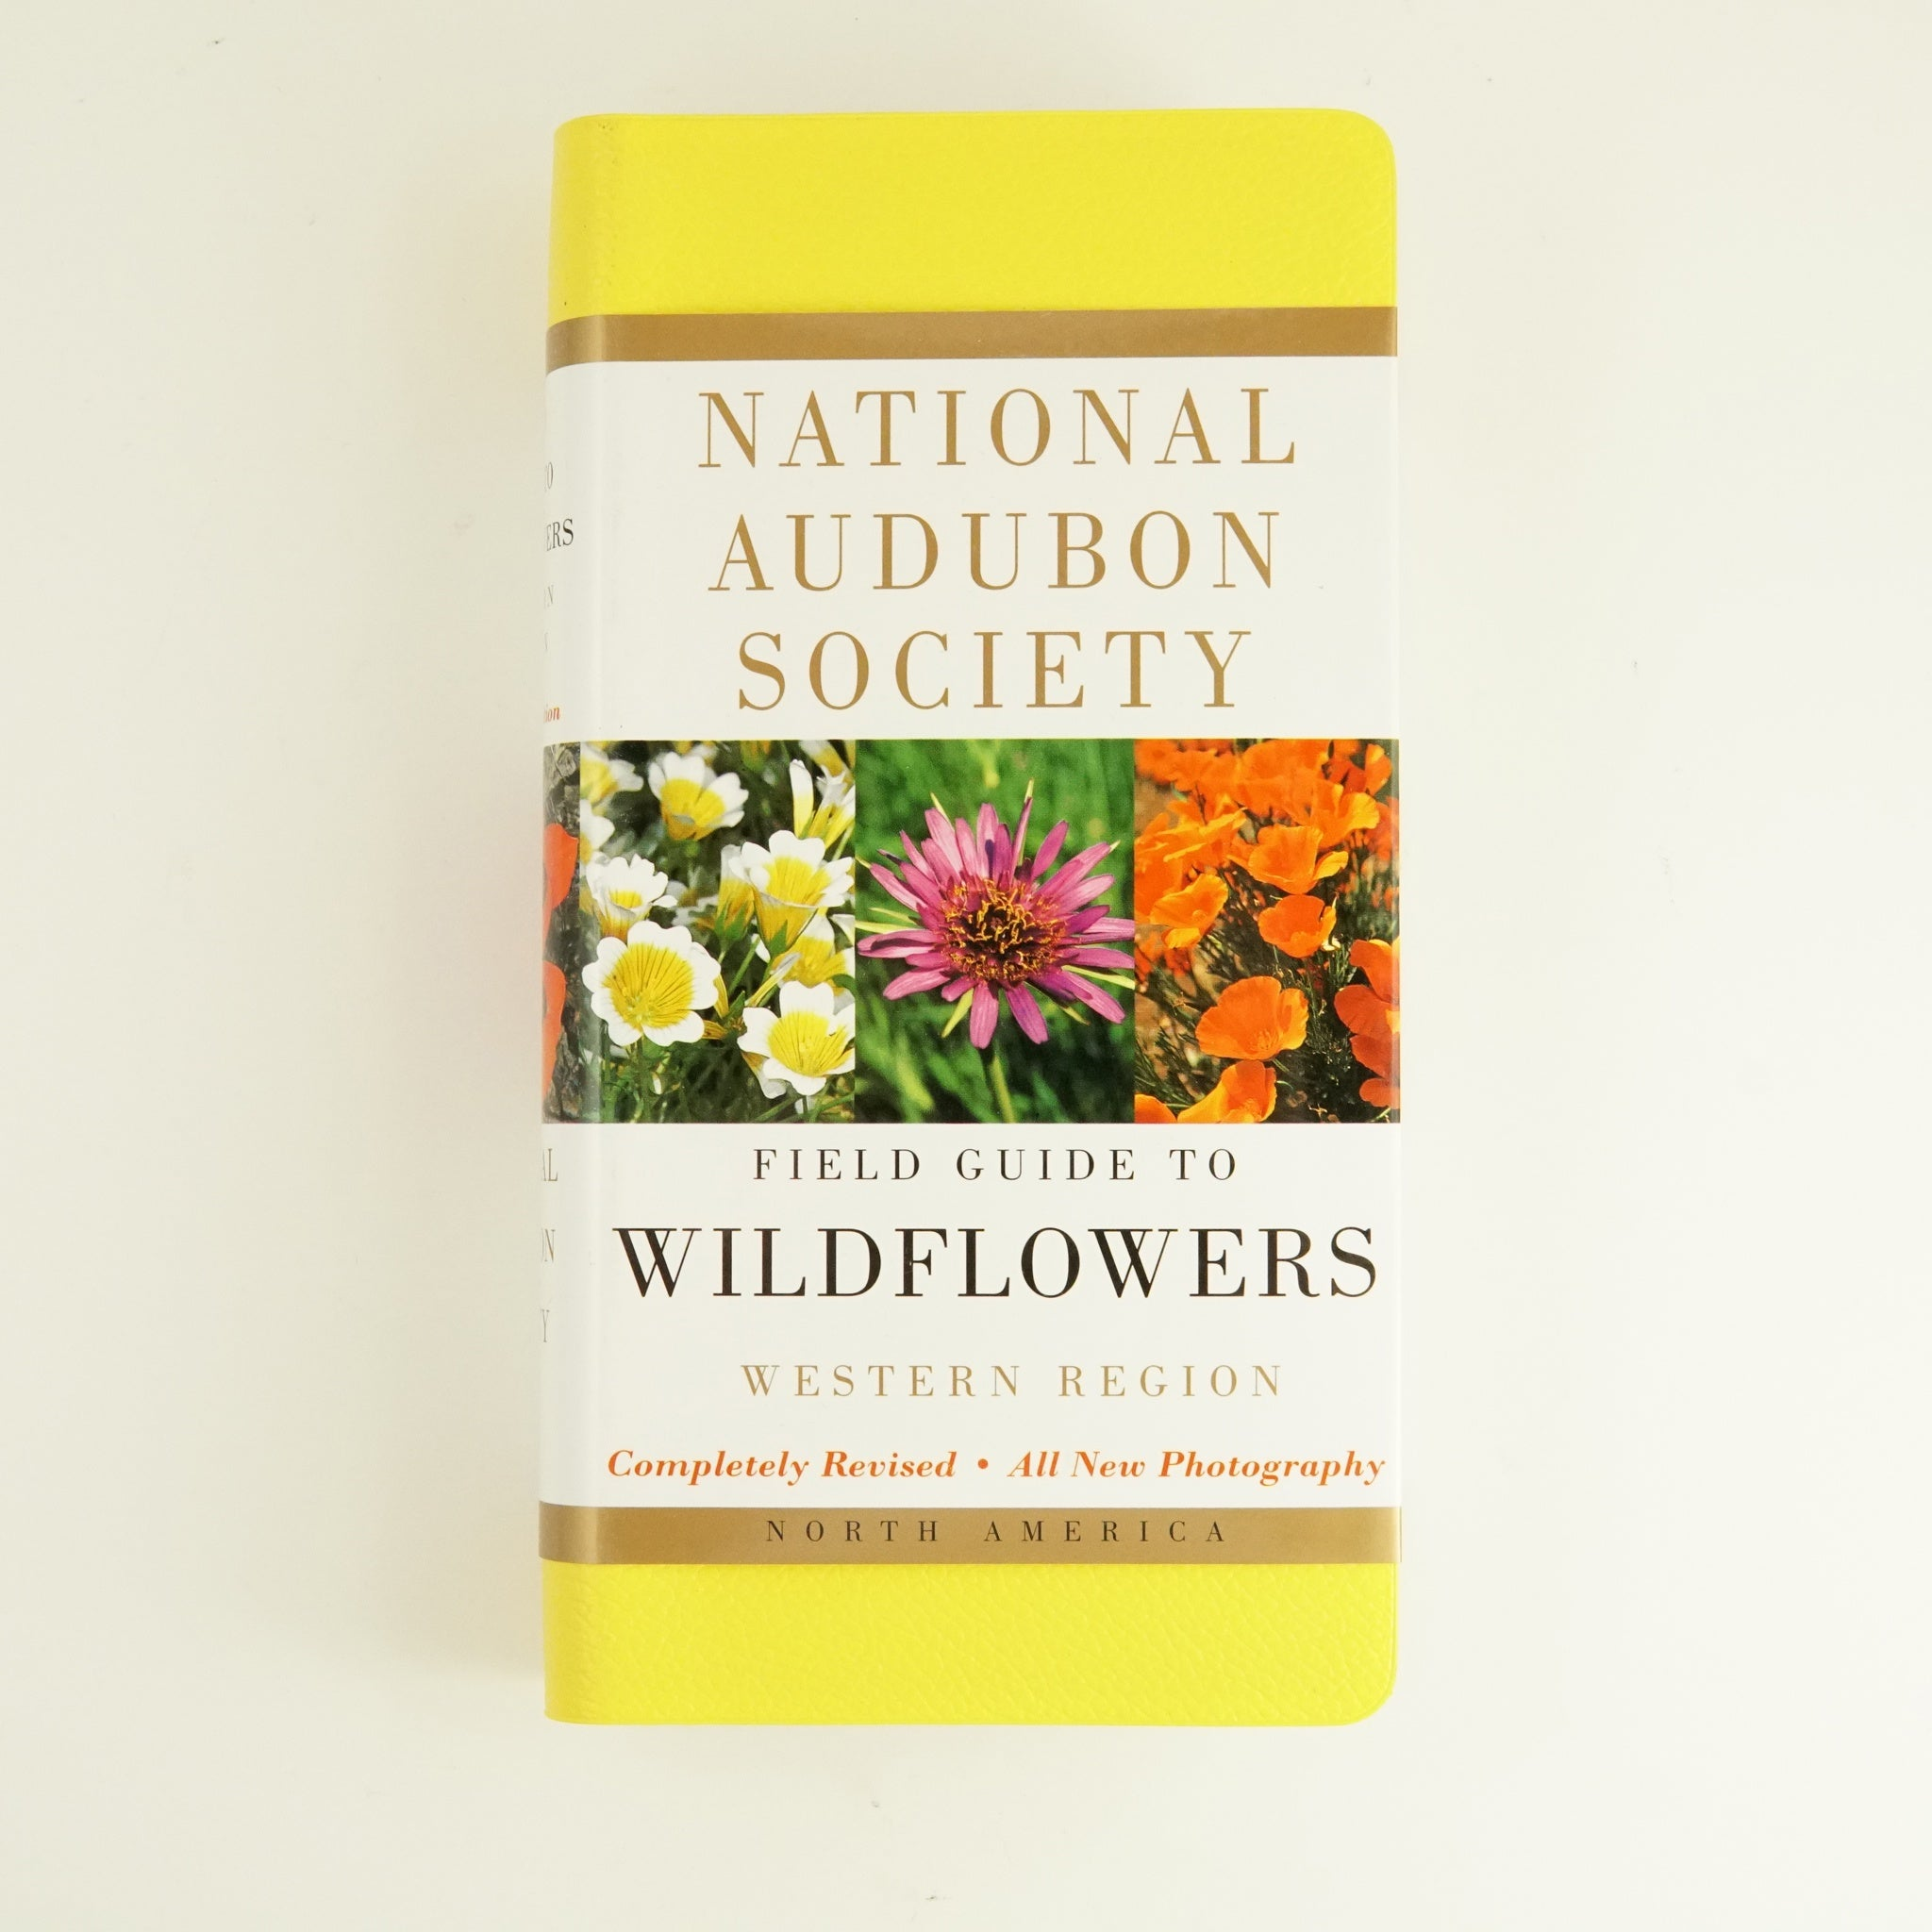 BK 13 FIELD GUIDE TO WILDFLOWERS